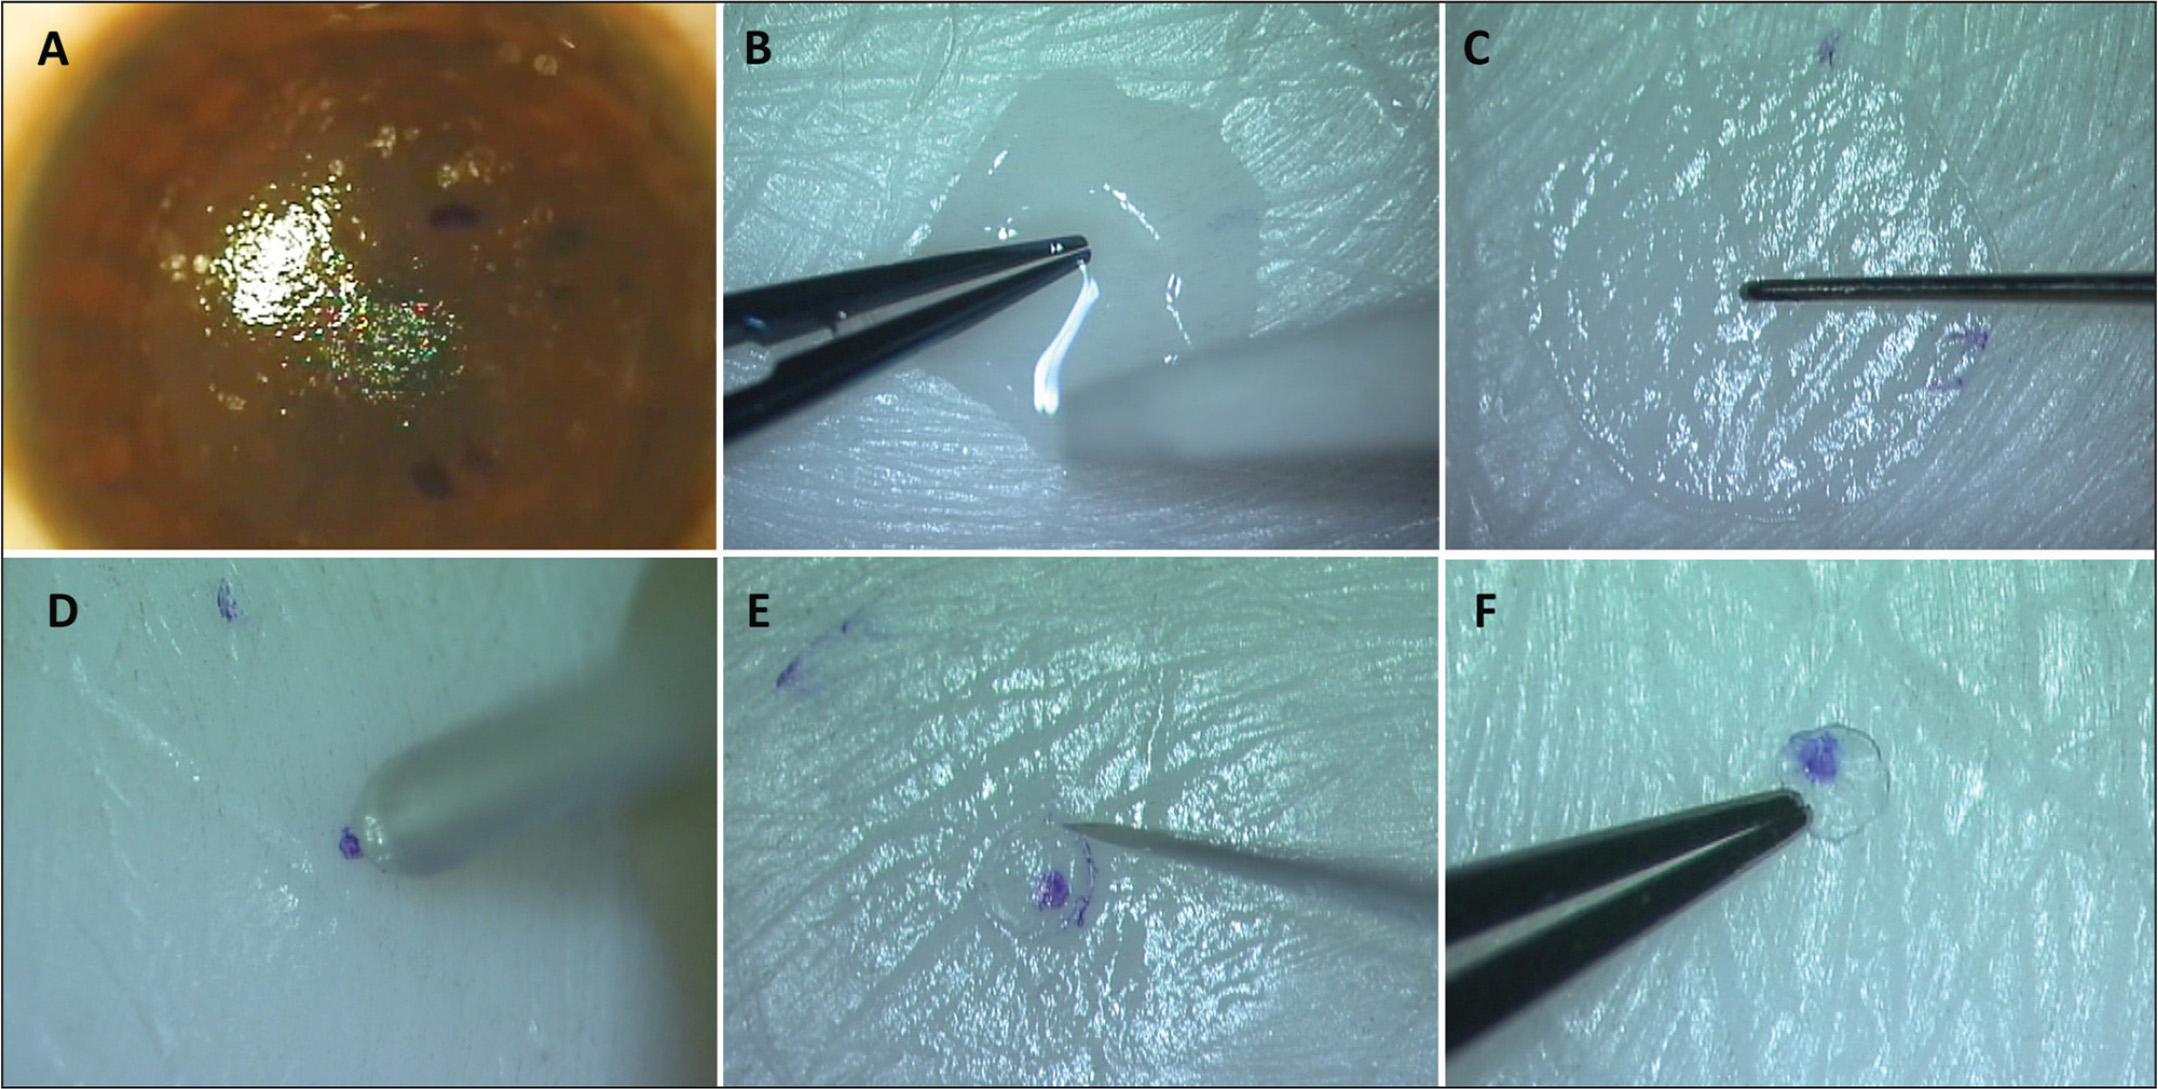 PrEsbyopic Allogenic Refractive Lenticule (PEARL) inlay preparation. (A) The small incision lenticule extraction (SMILE) lenticule is harvested and marked with three horizontal lines, a single one above separated from two closely placed parallel marks below. (B) The stored SMILE lenticule is spread out with anterior side facing up and dried with a surgical sponge. (C) The center is marked with the inked tip of a fine Sinskey hook. Orientation marks are clearly visible. (D) A 1-mm trephine is used to cut the lenticule. (E) Any uncut tags may be cut with a 15° blade. (F) The prepared PEARL inlay is ready for implantation.